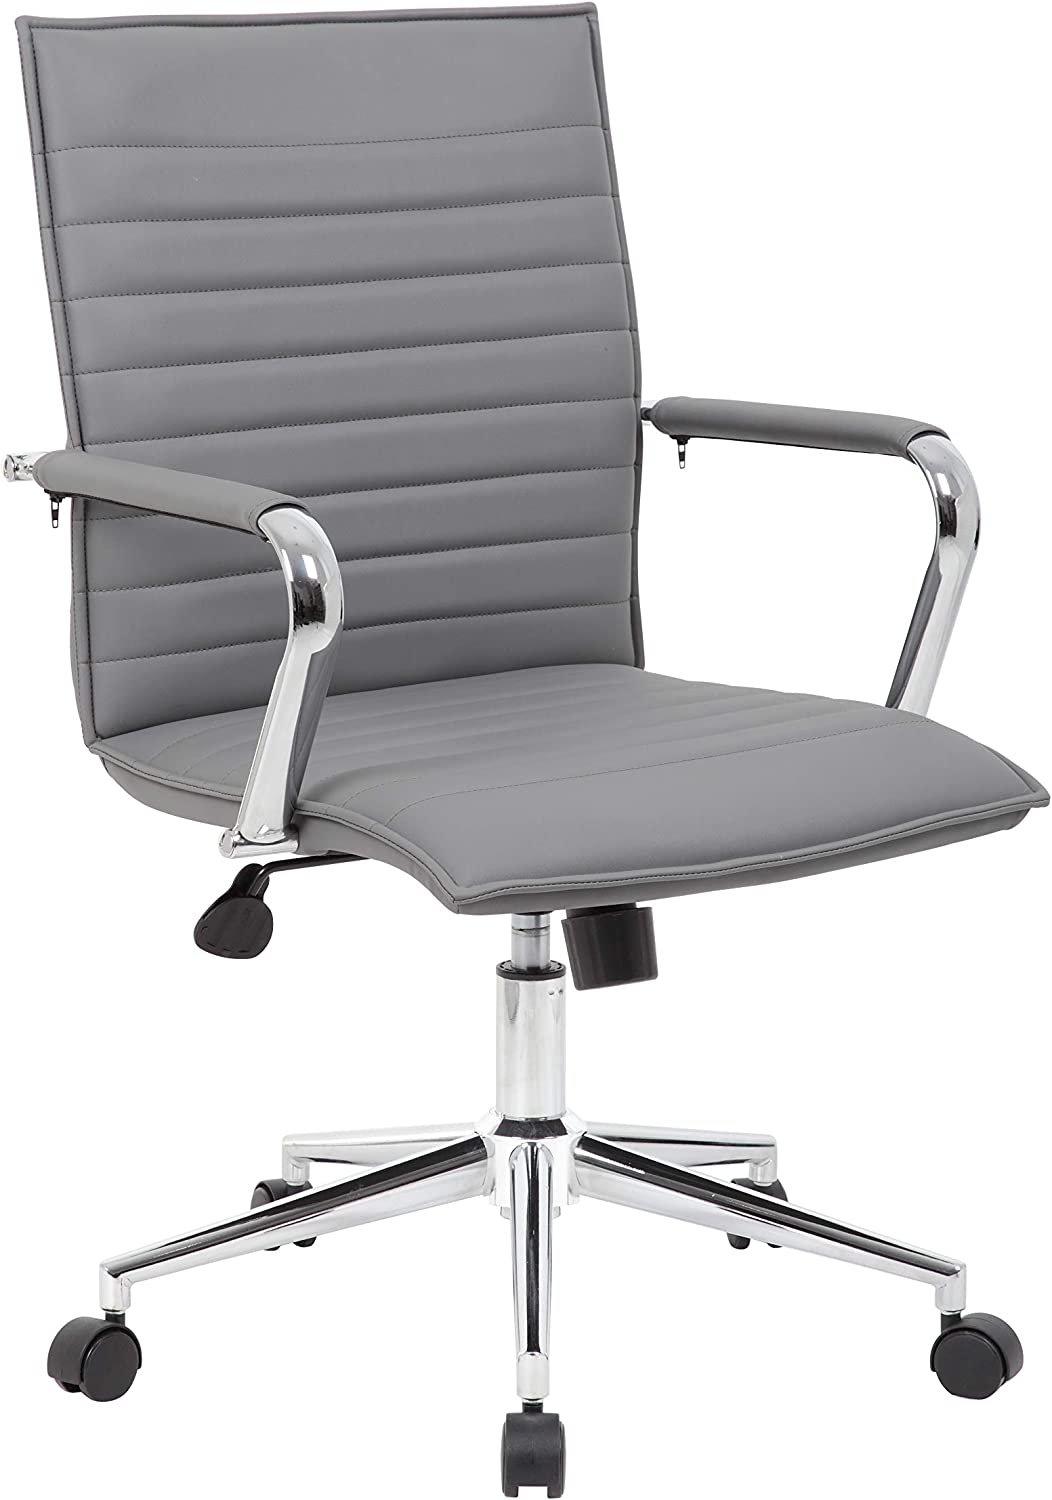 Boss Office Products Hospitality Chair, Grey